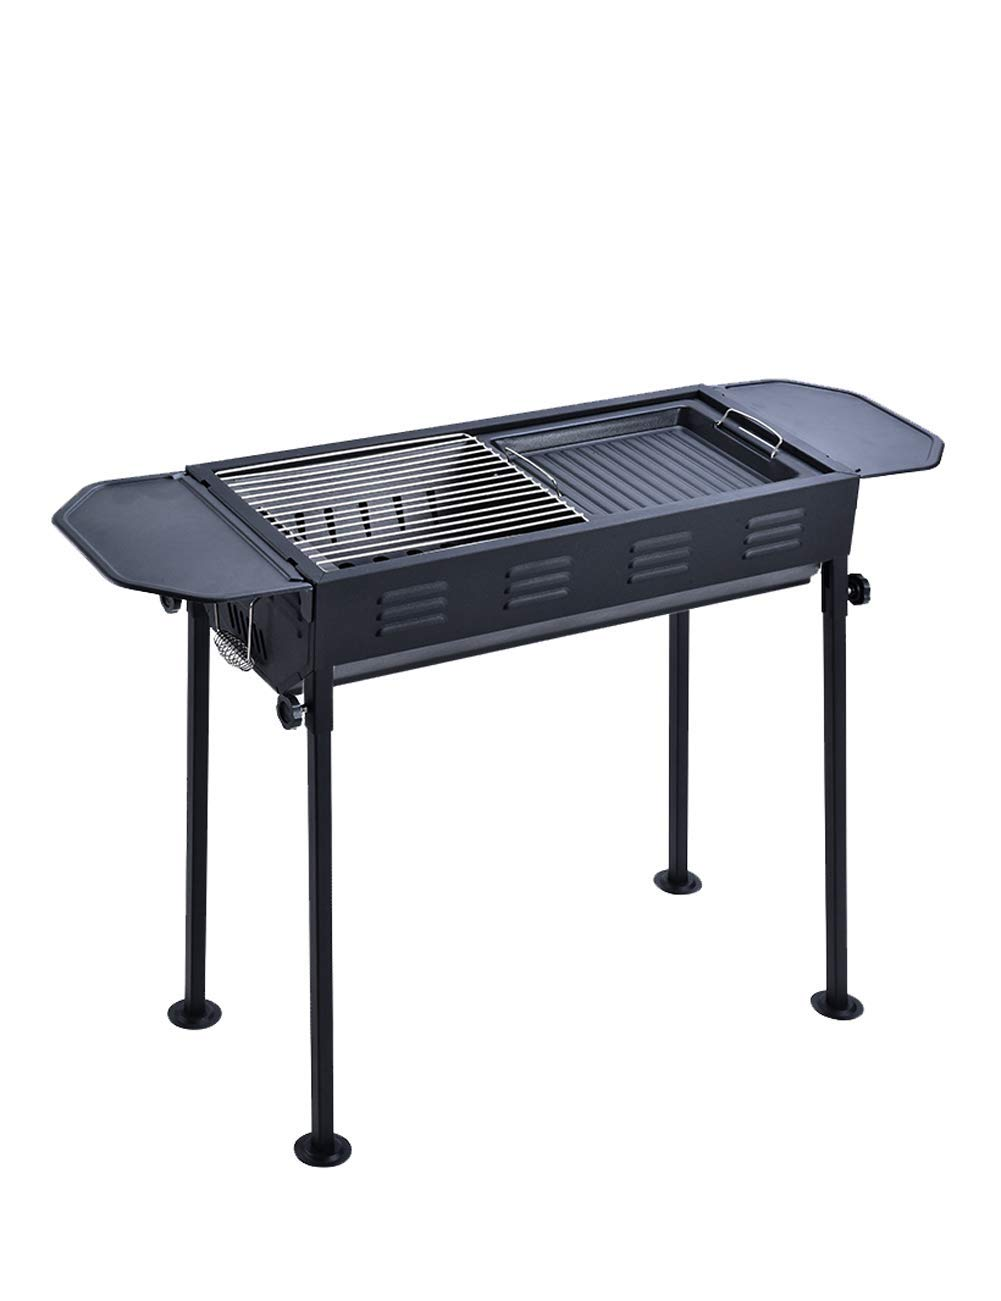 Charcoal Grill, Full Field Tool Holder, Portable, Suitable for Family Friends, Outdoor Activities Party Garden Mountaineering Wild Park Jungle - Black